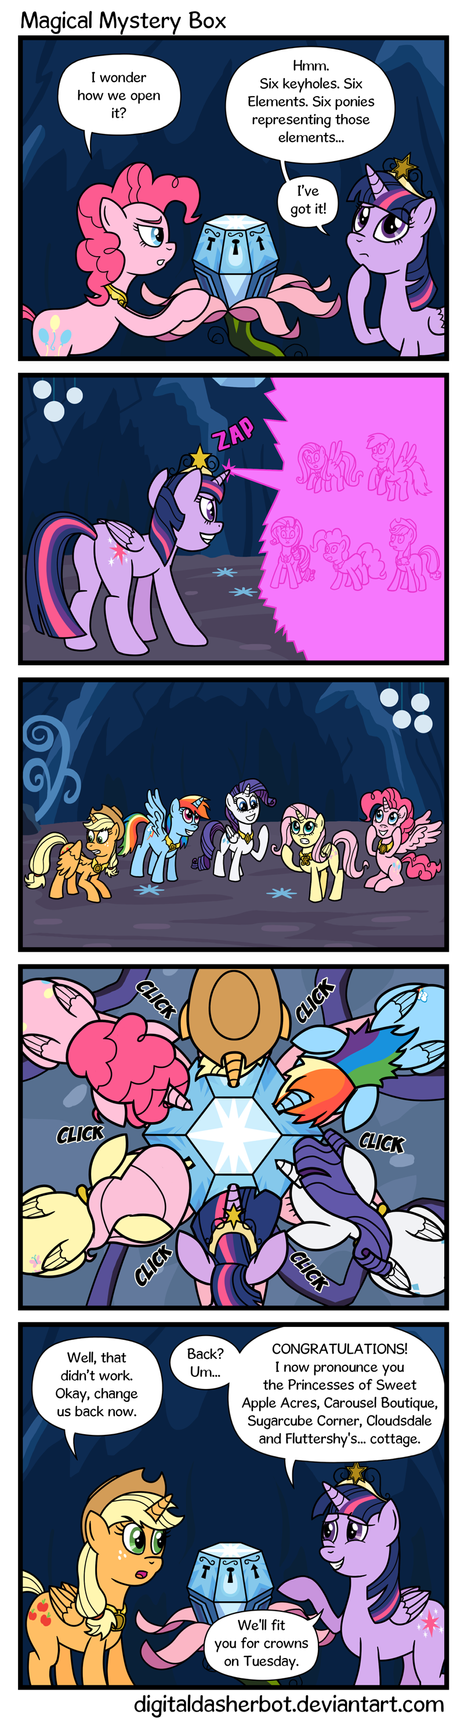 Magical Mystery Box by DigitalDasherBot